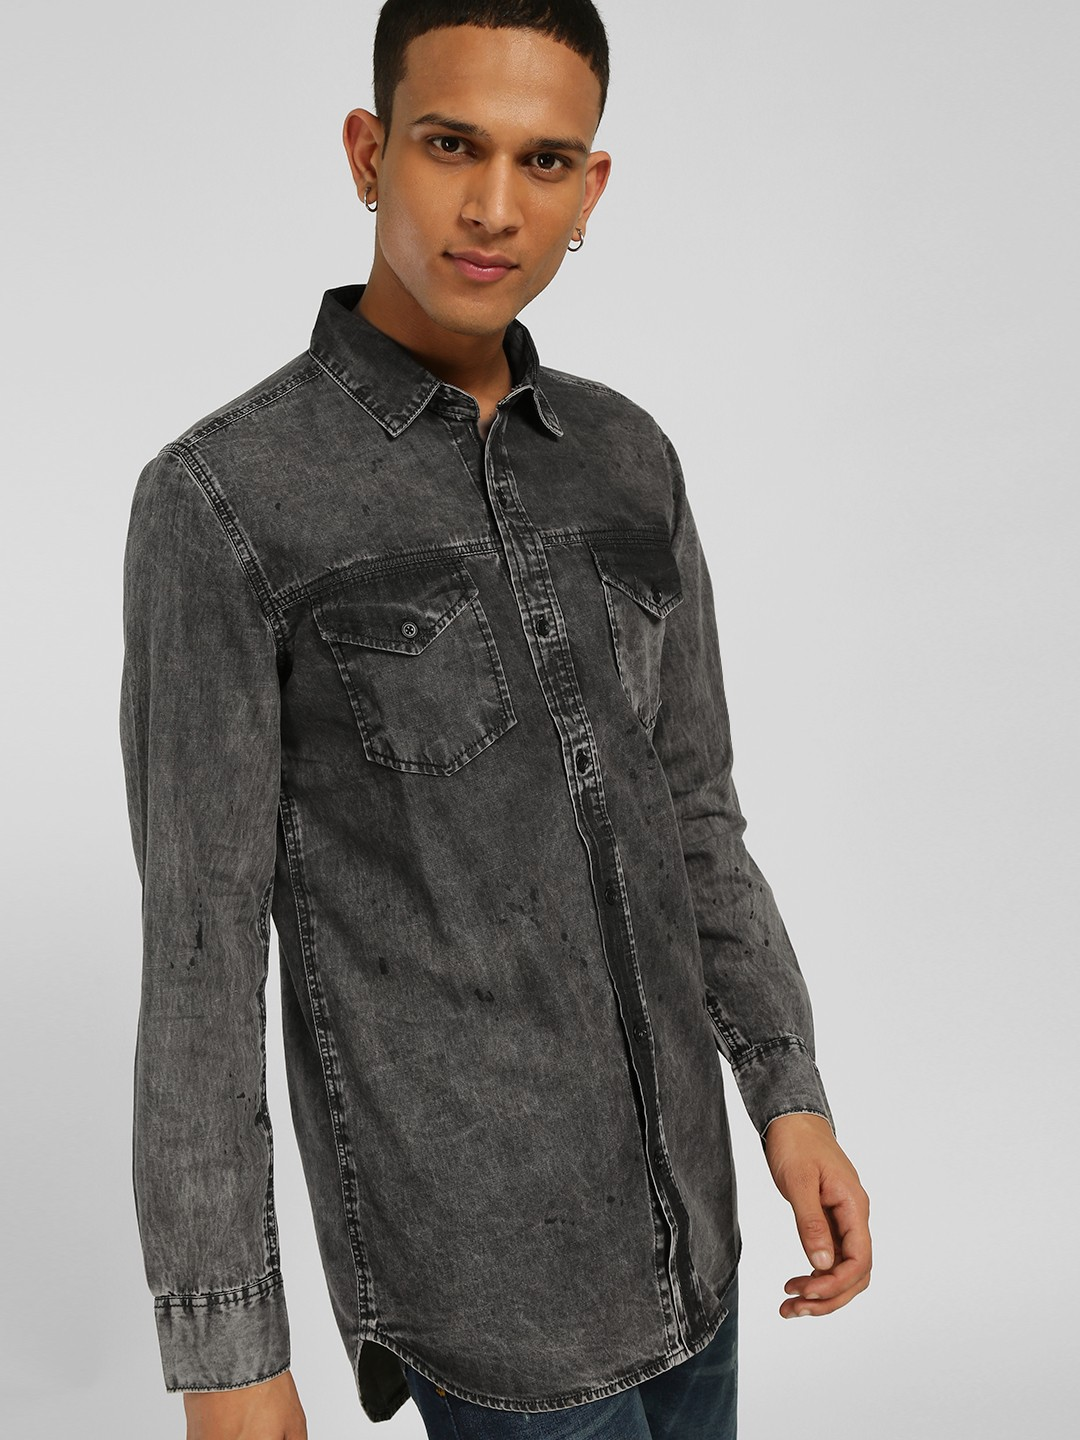 SKULT By Shahid Kapoor Grey Acid Wash Longline Denim Shirt 1